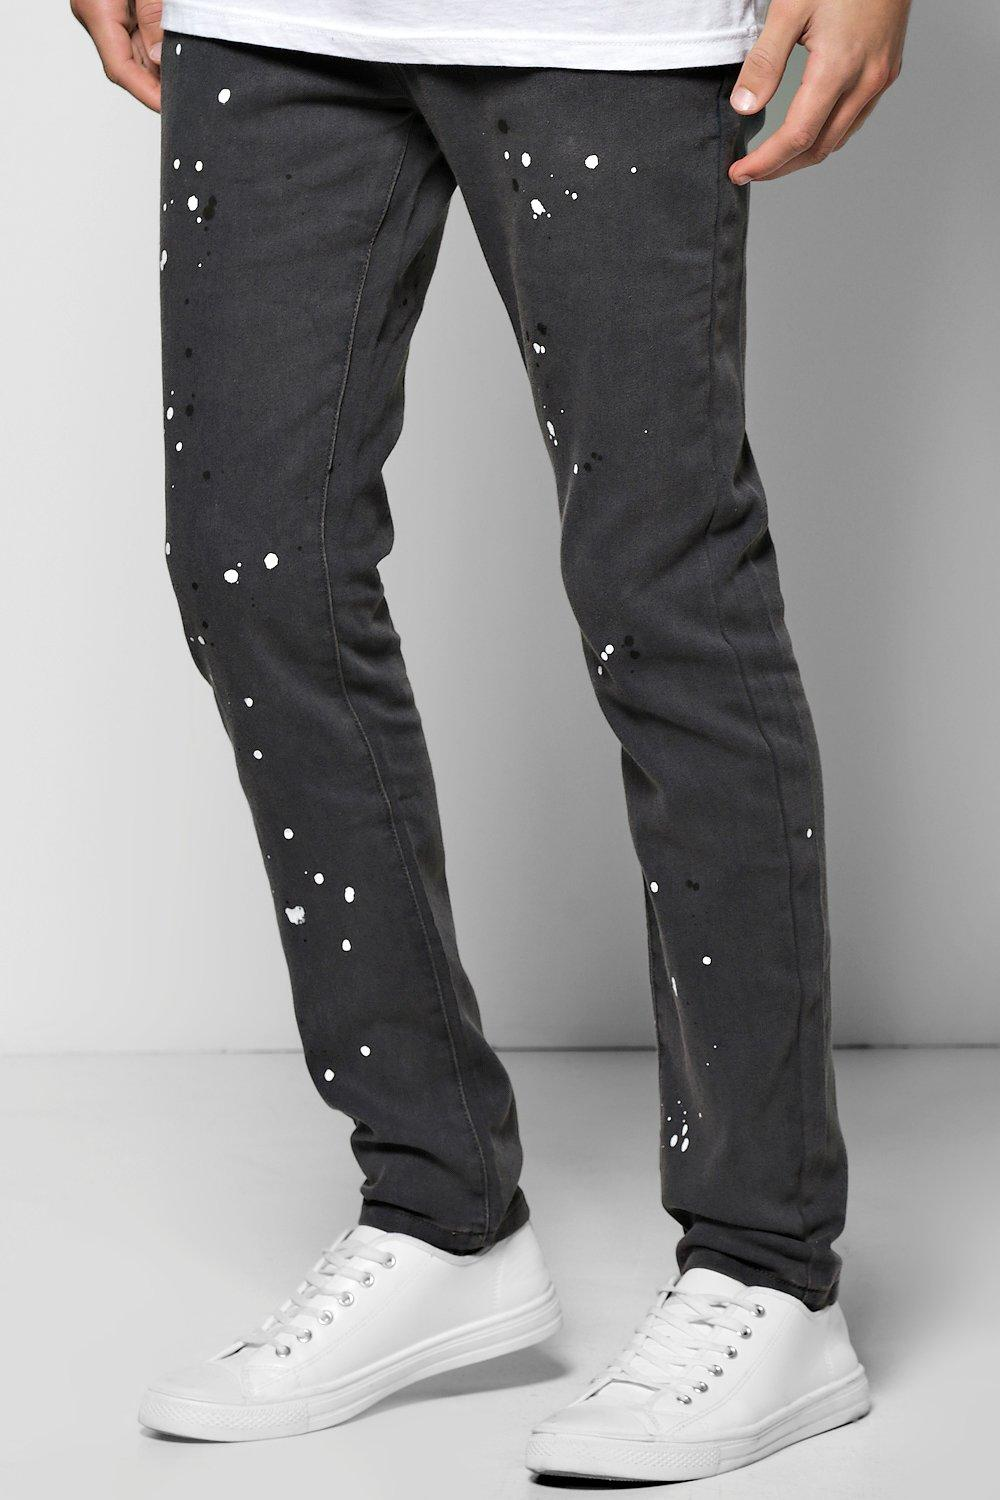 Skinny Fit Paint Splattered Jeans